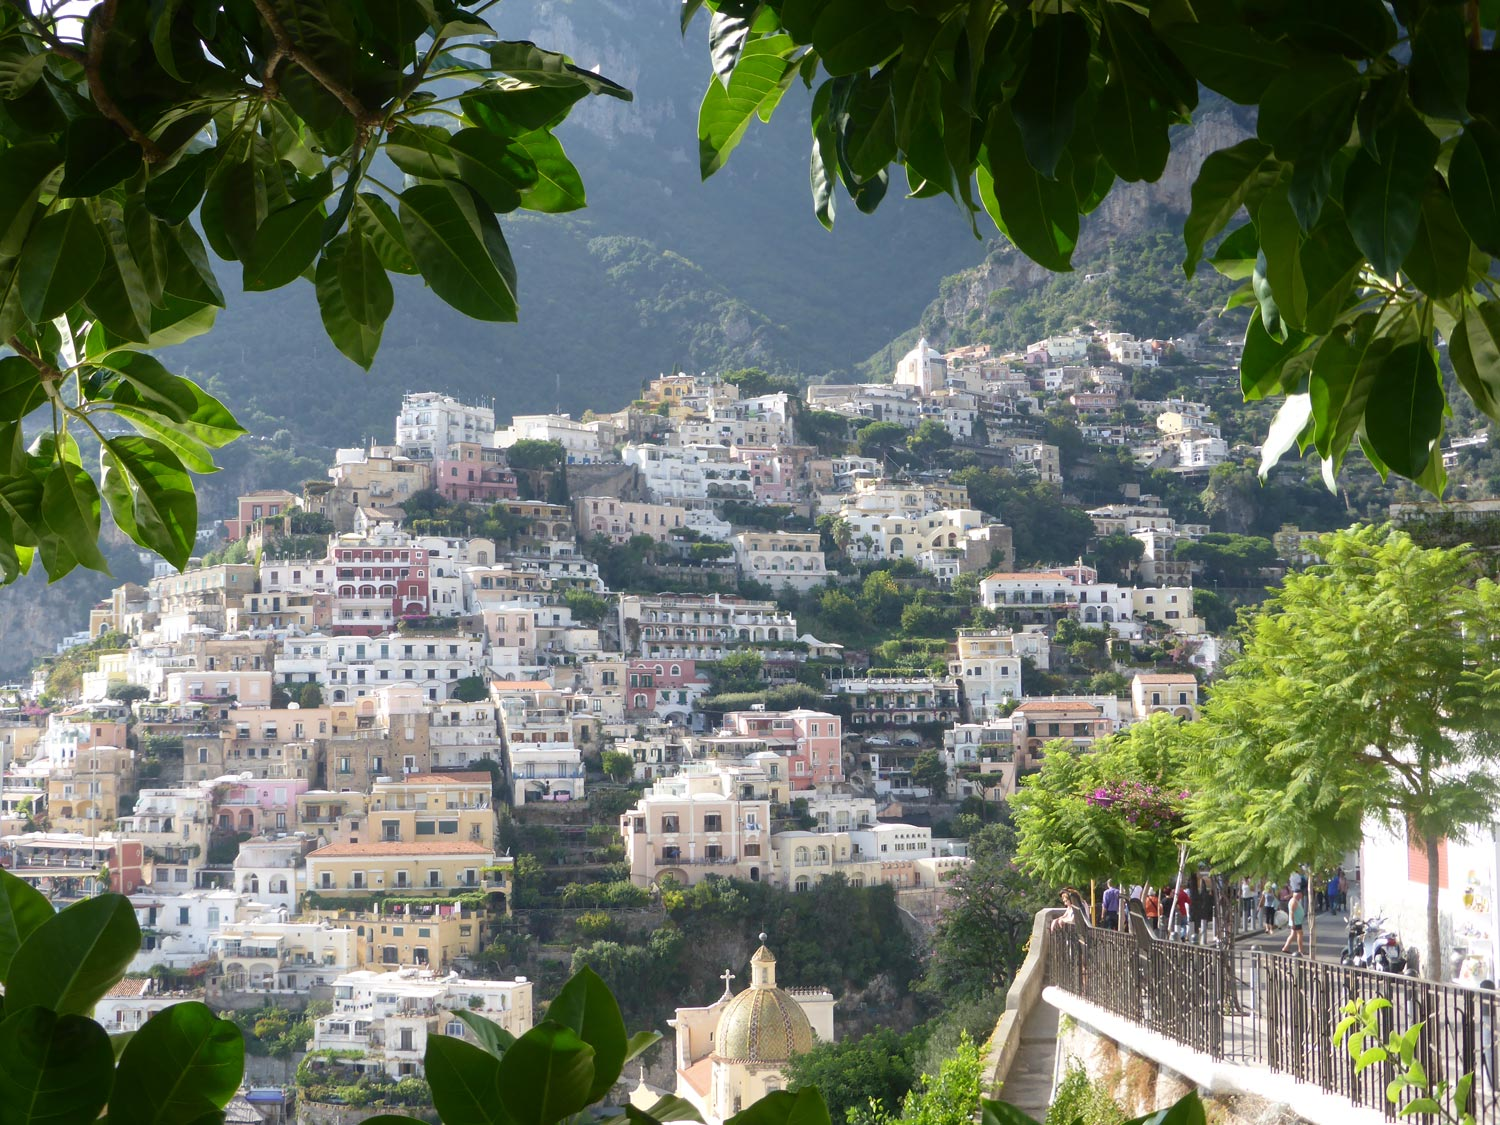 View from a walking trail in Positano